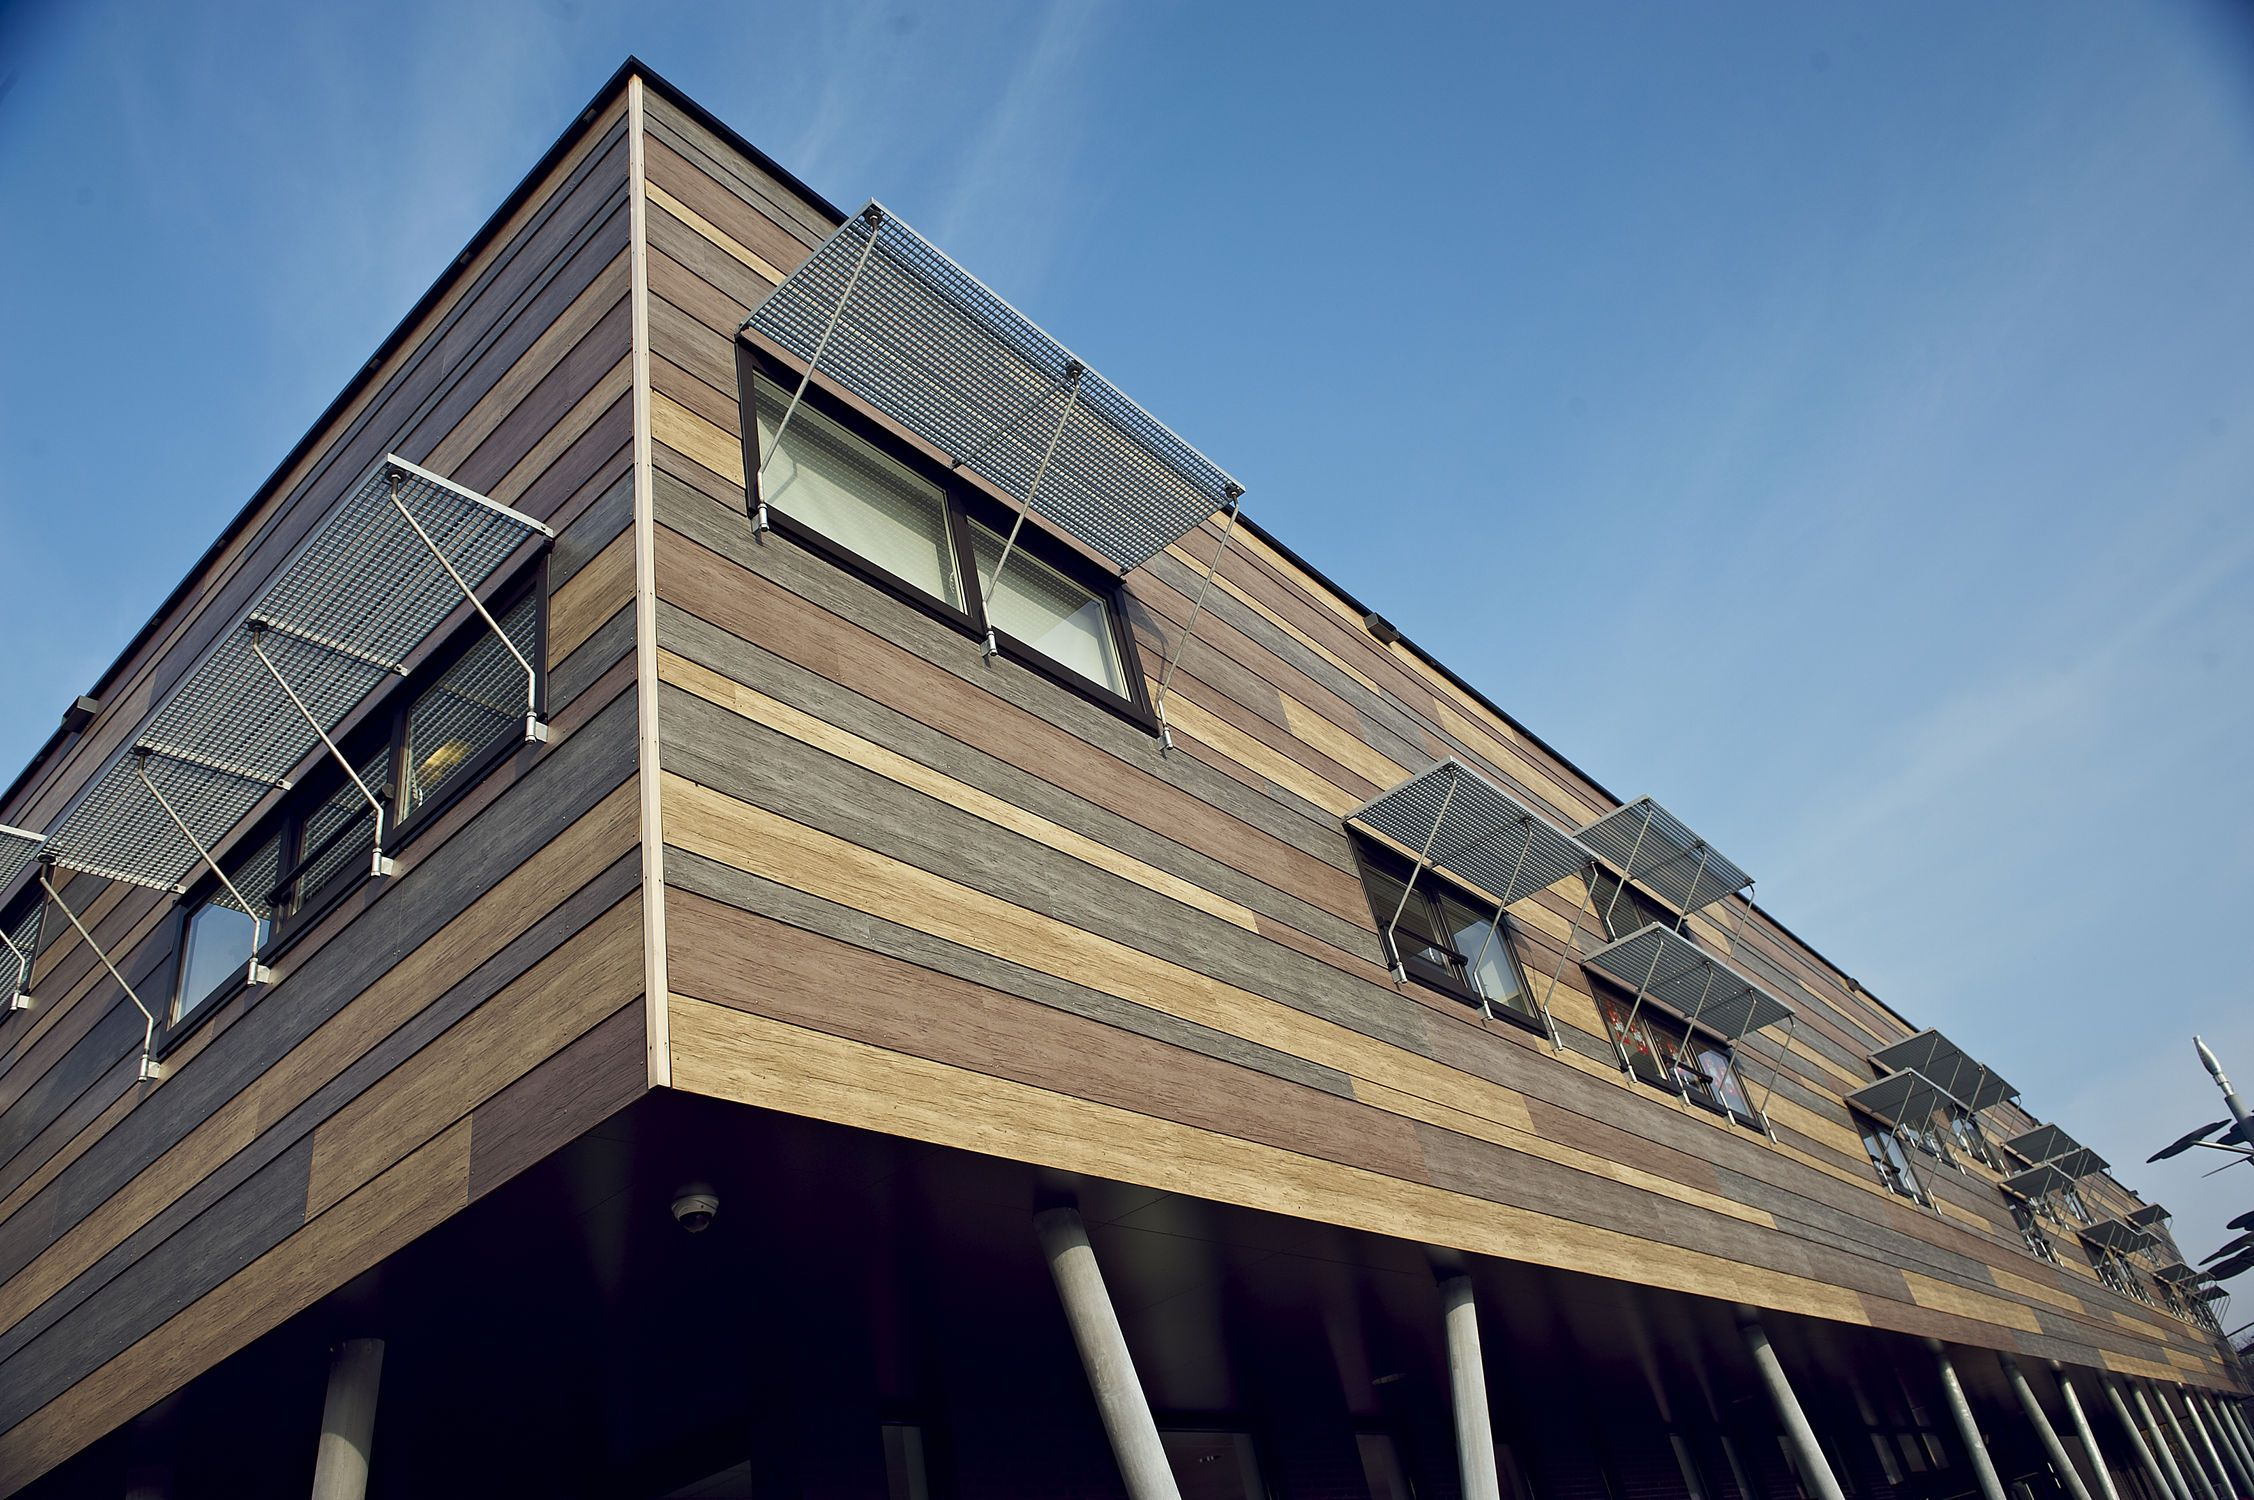 Composite cladding / lacquered / smooth / panel ROCKPANEL WOODS Rockwool B.V. / Rockpanel Group